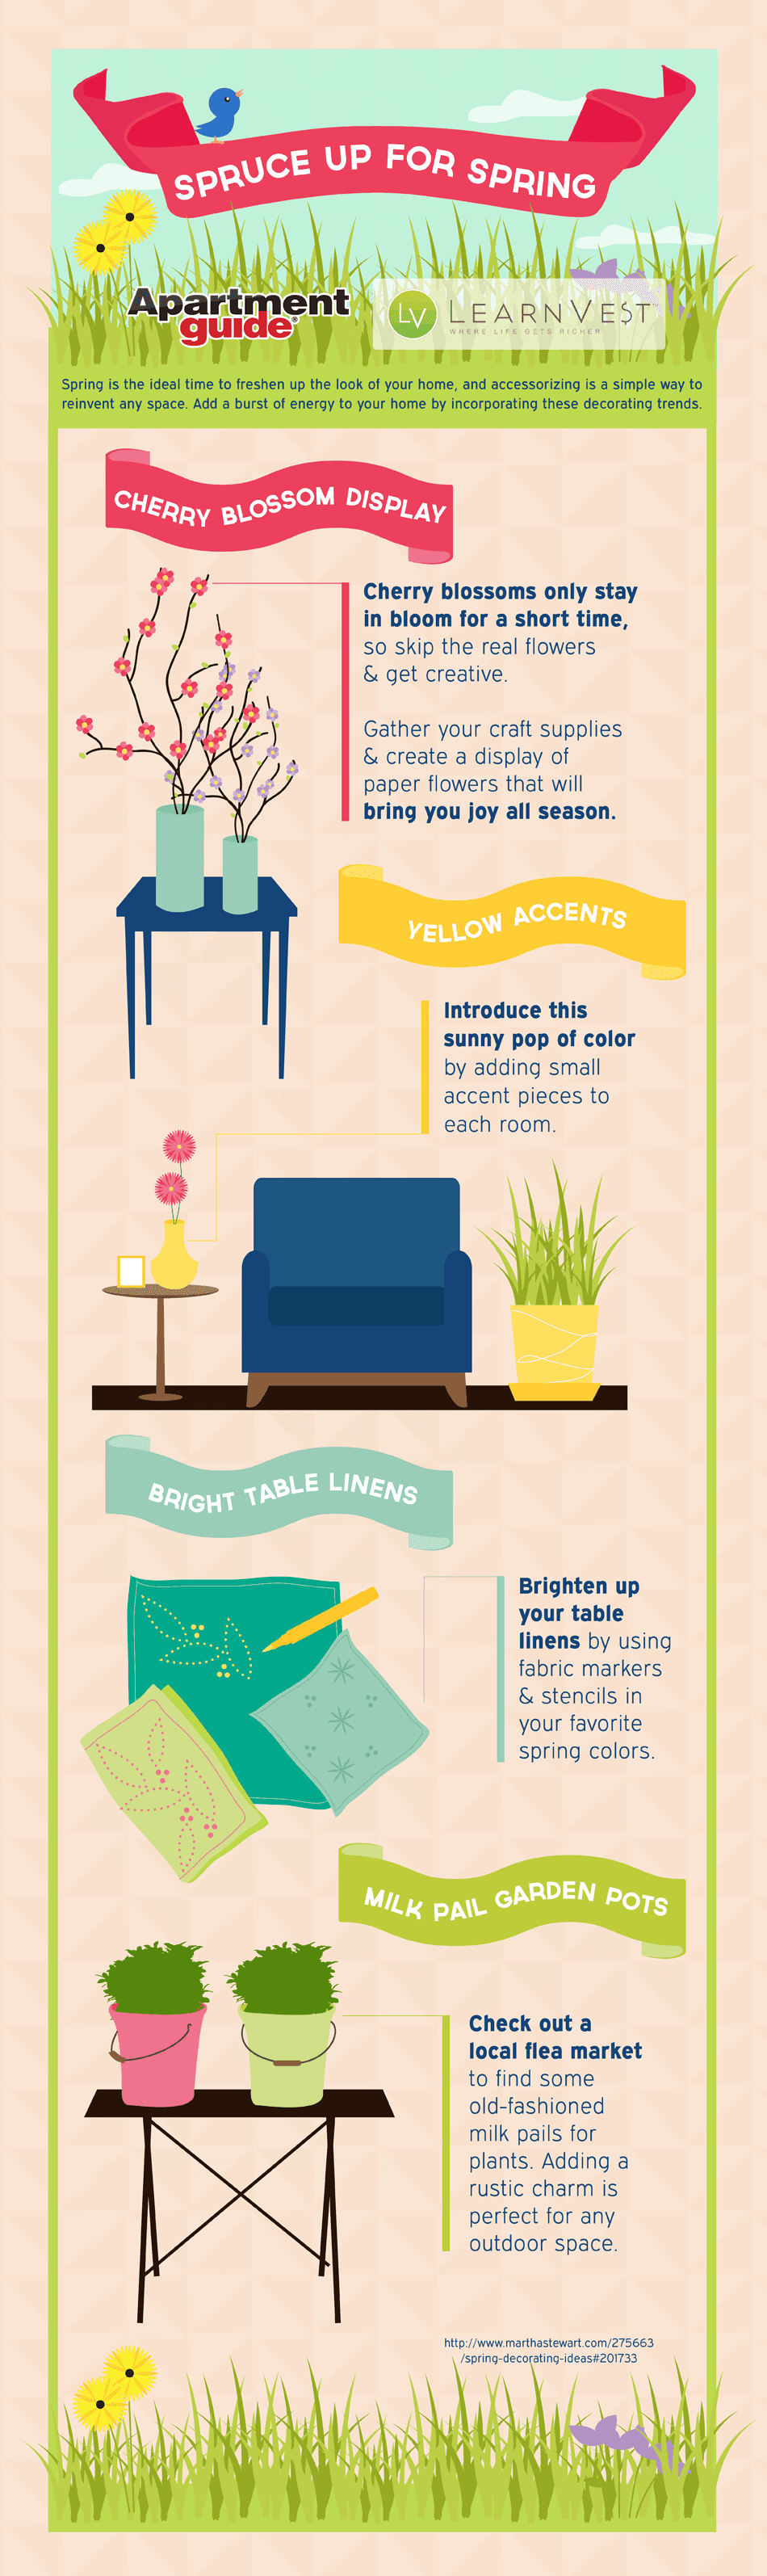 Spruce Up For Spring Freshen Up Your Home Infographic